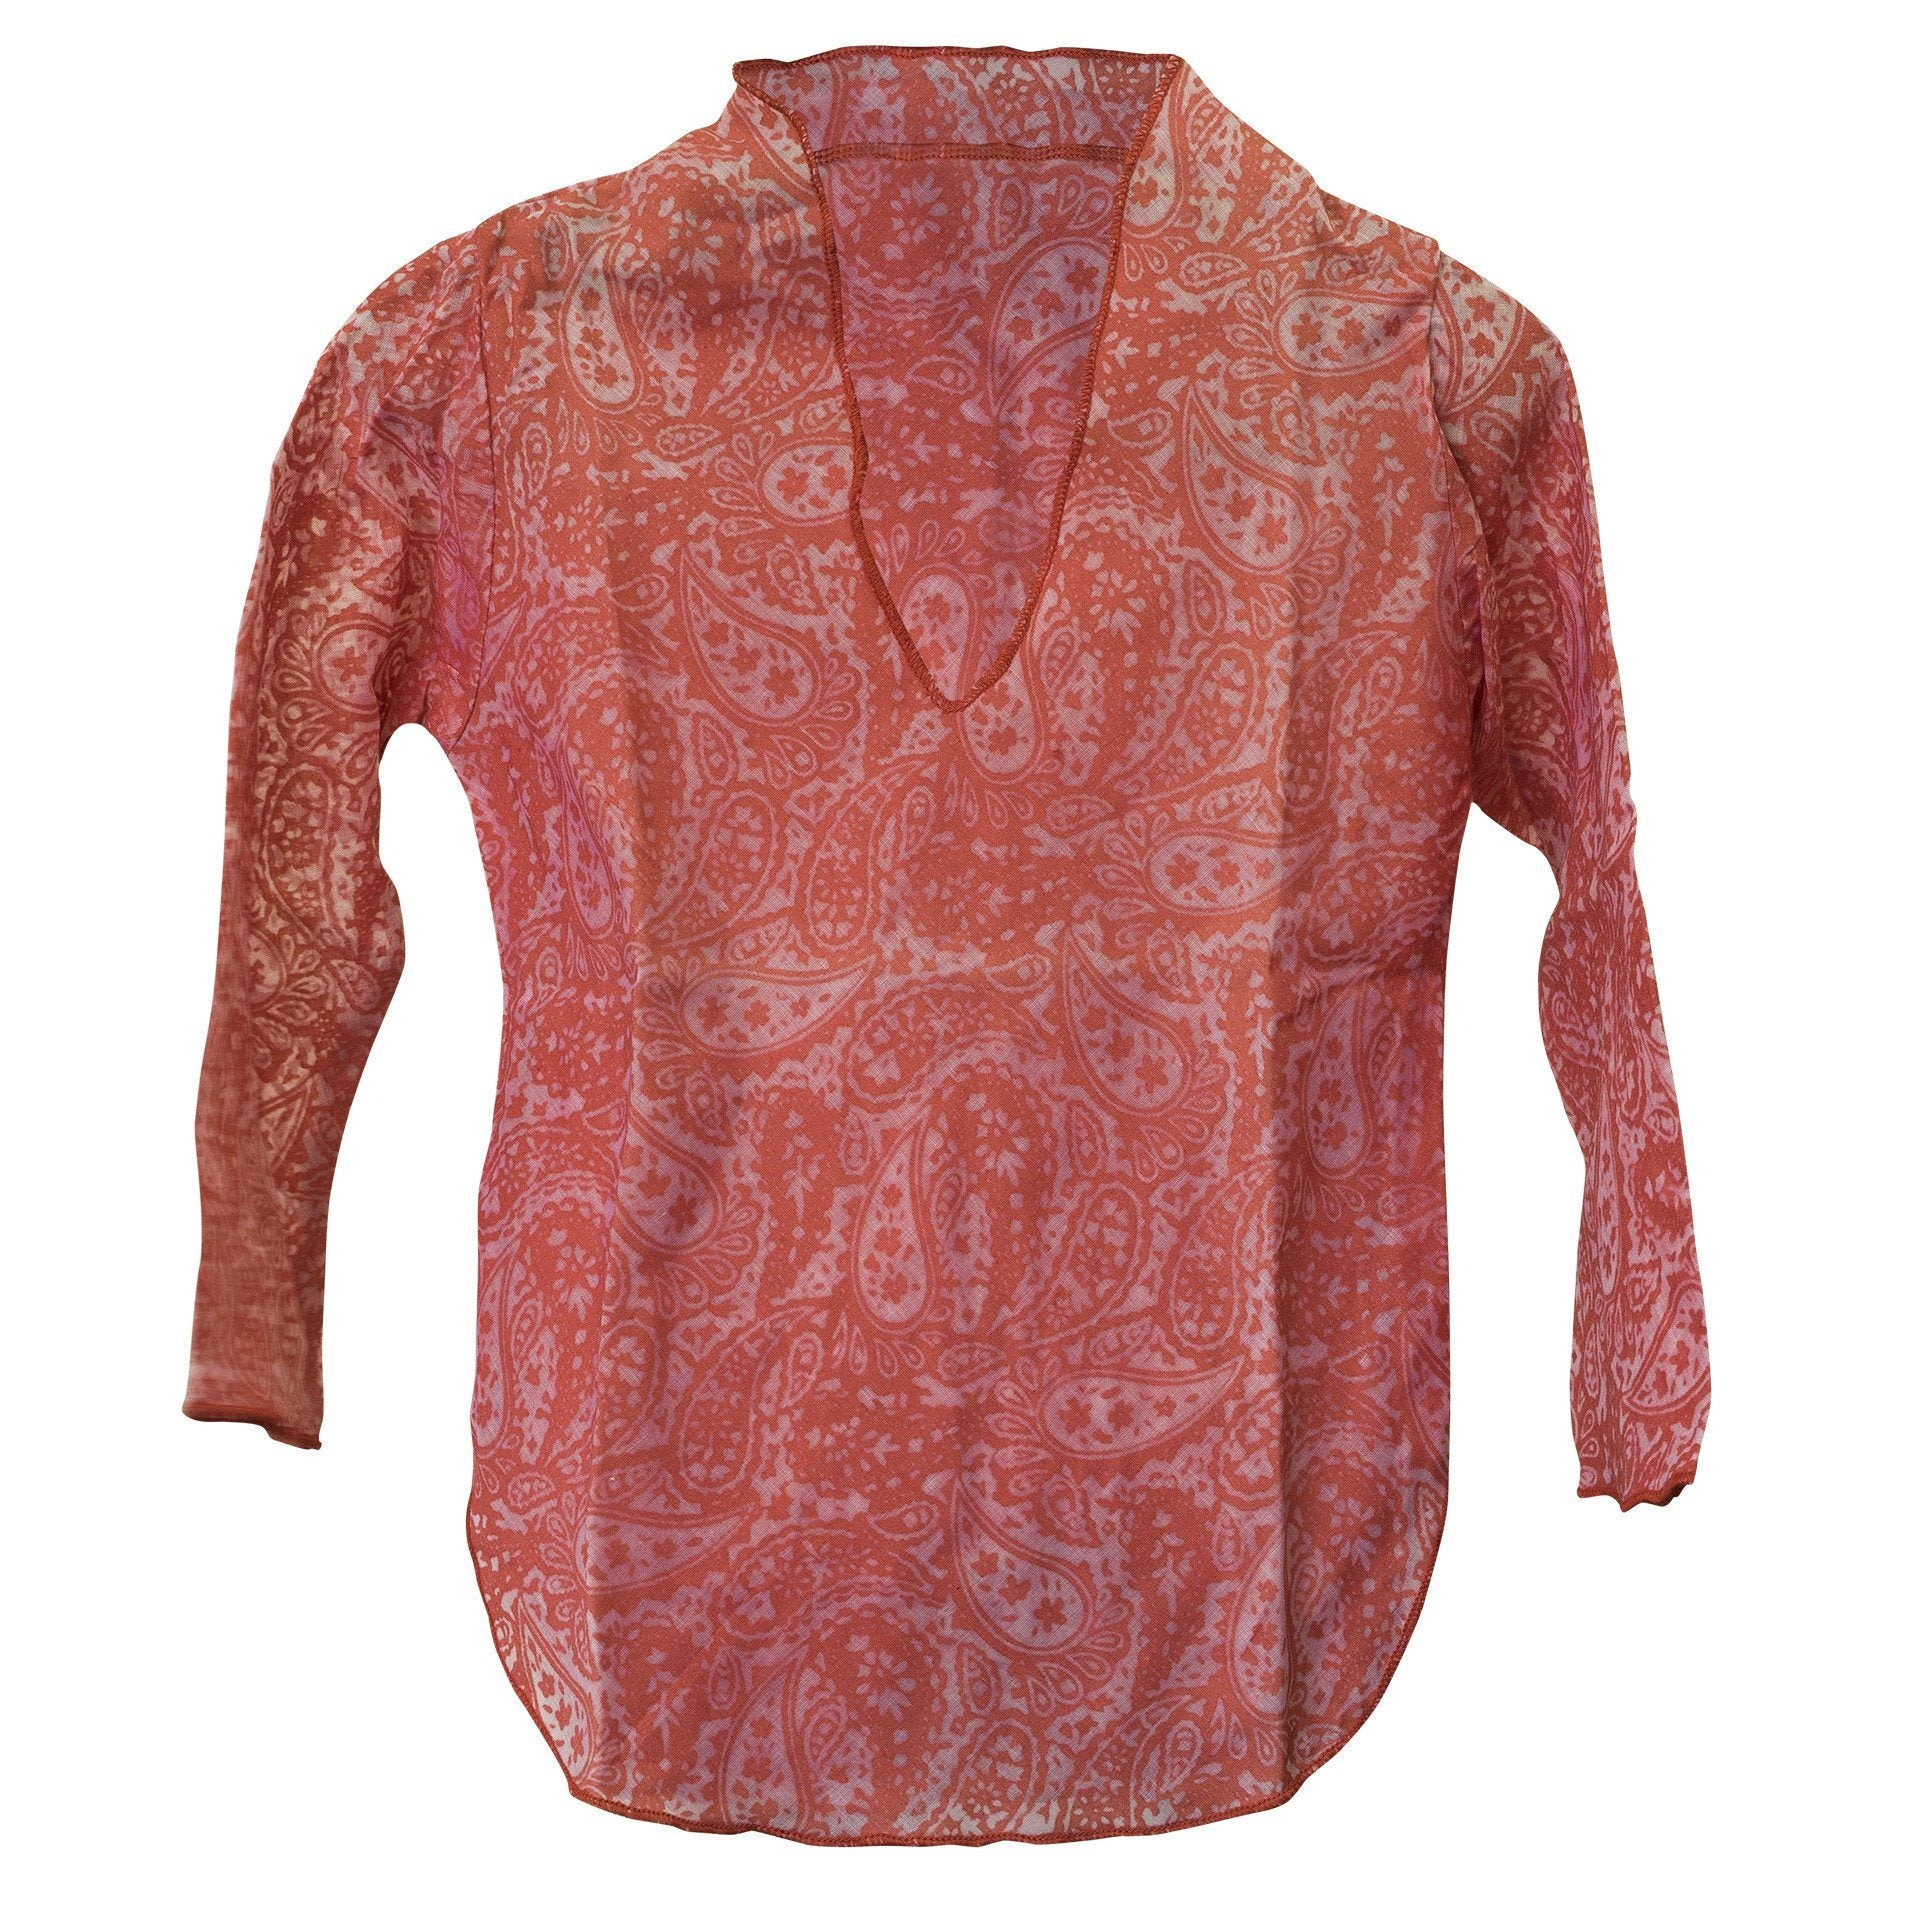 Kids Boy Girl Unisex Cotton Shirt Top V Neck 3/4 sleeve M Paisley - CCCollections